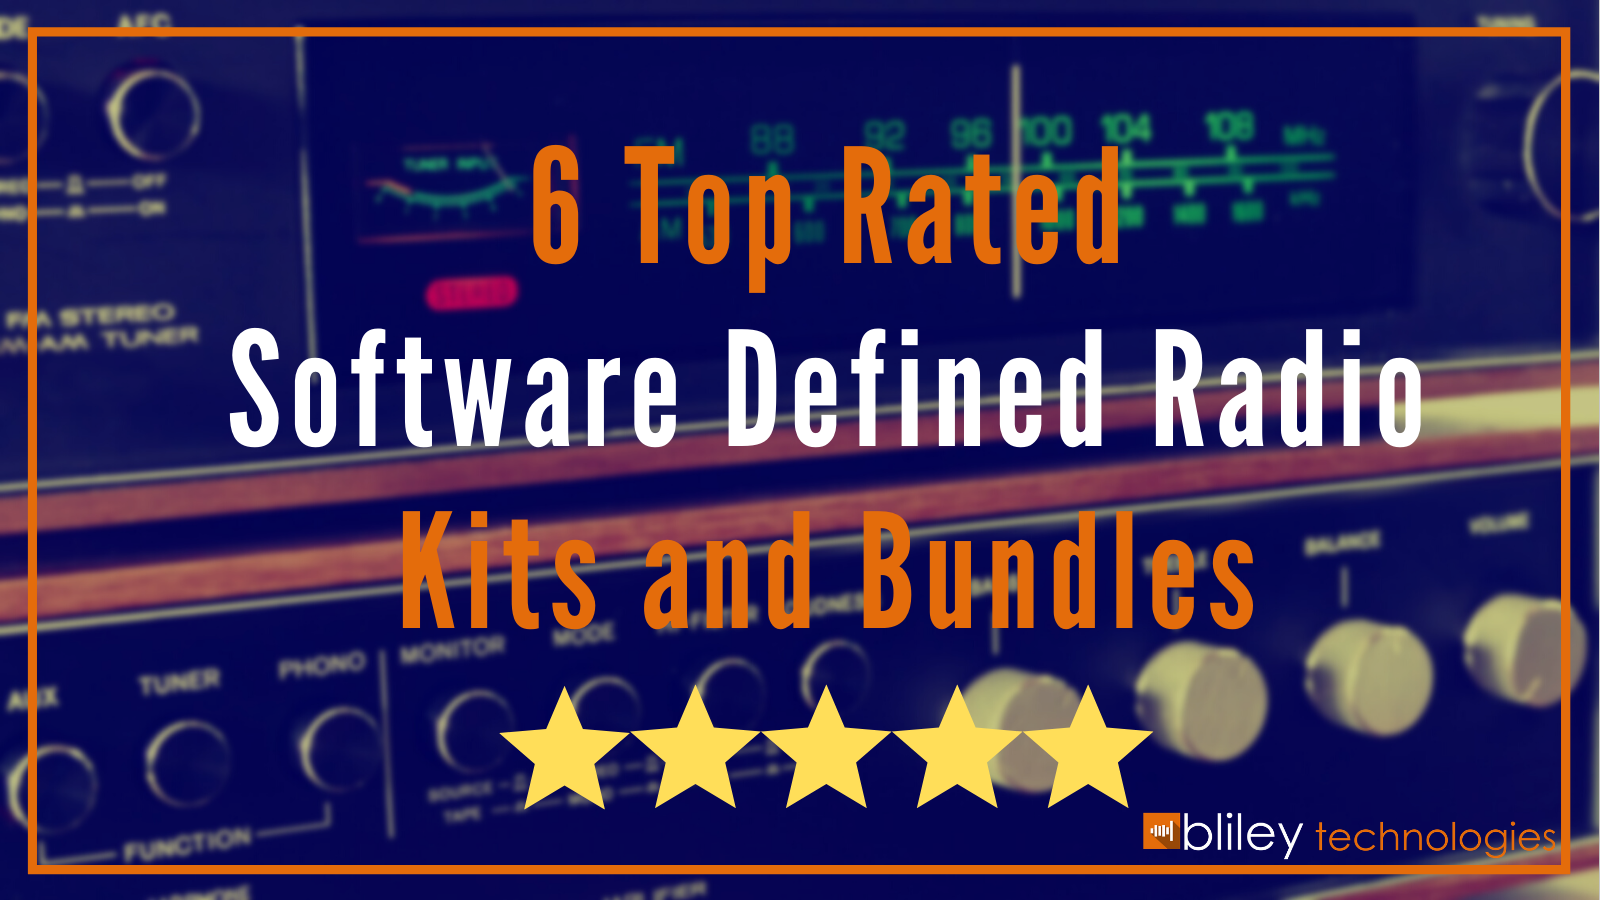 6 Top Rated Software Defined Radio Kits and Bundles